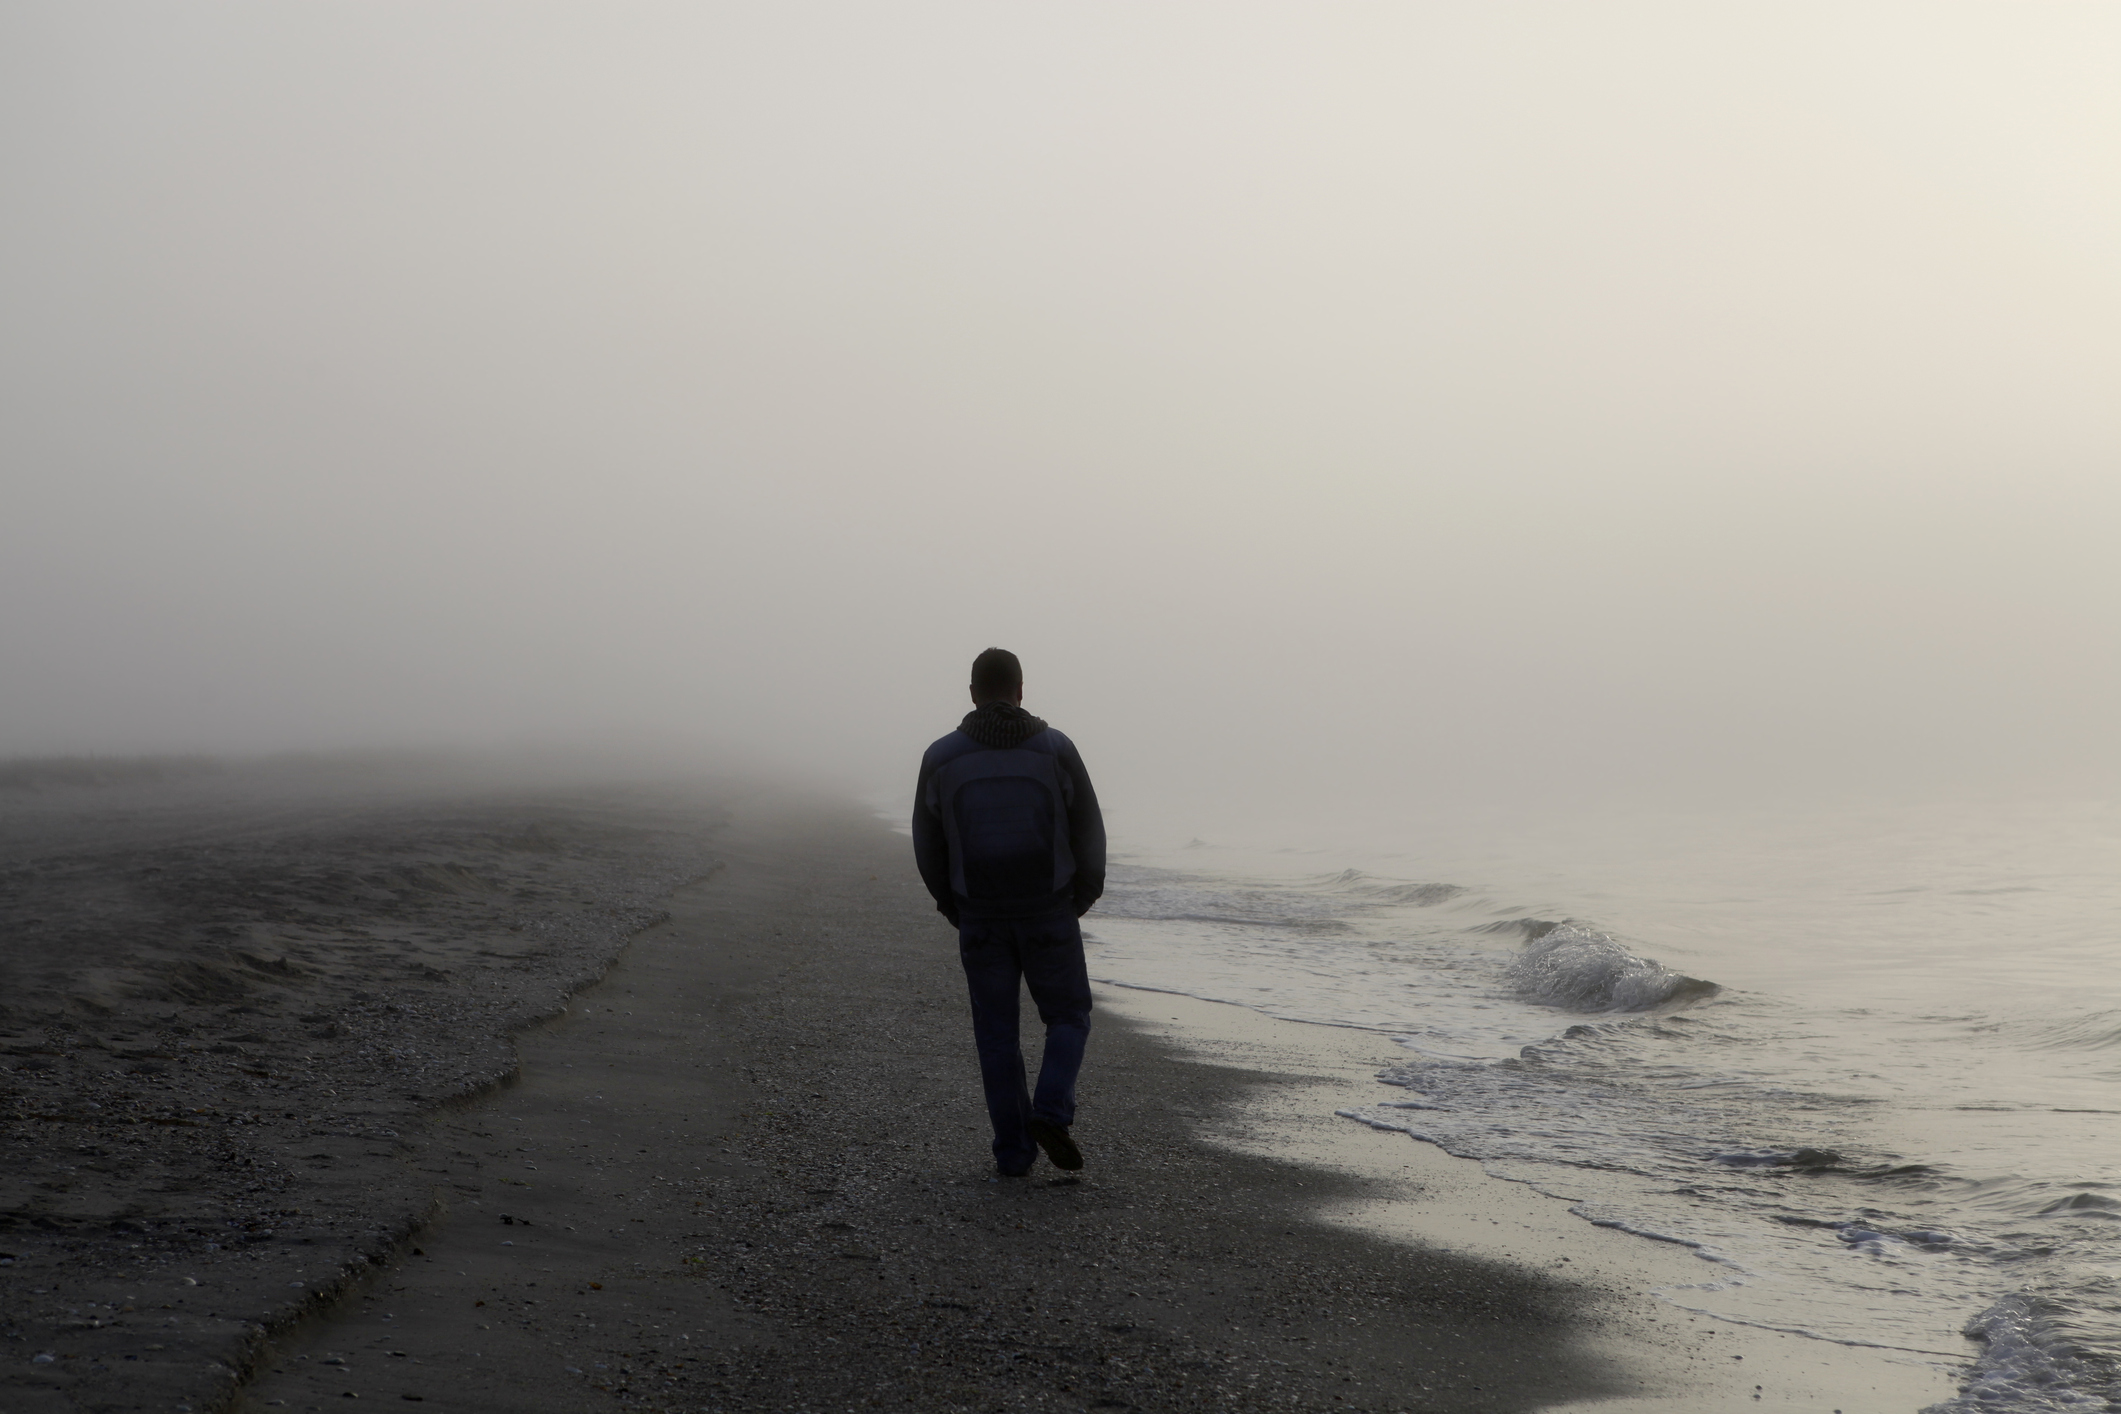 Man walking alone on a foggy beach